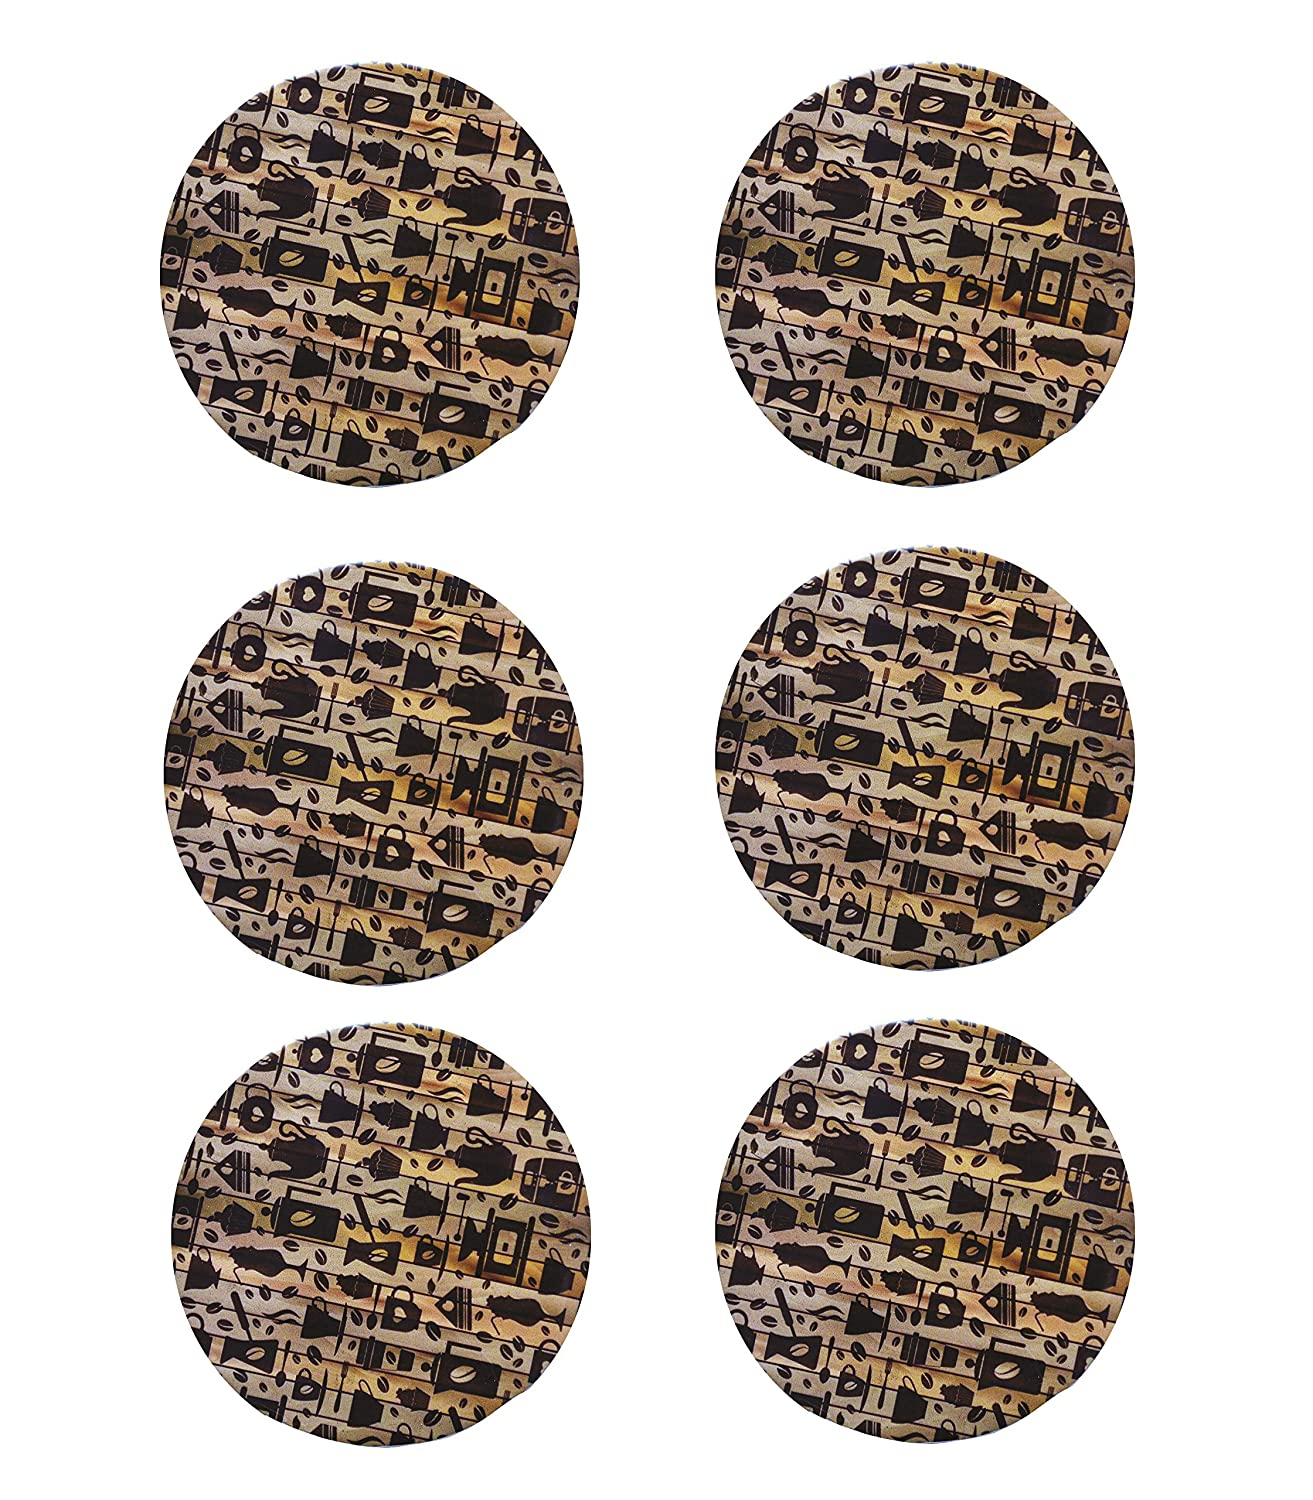 Beverage Brown Coasters Set of Round Personalized Drink Coasters Round, Pack of 12 Bar//Dining Accessories Printed Wooden